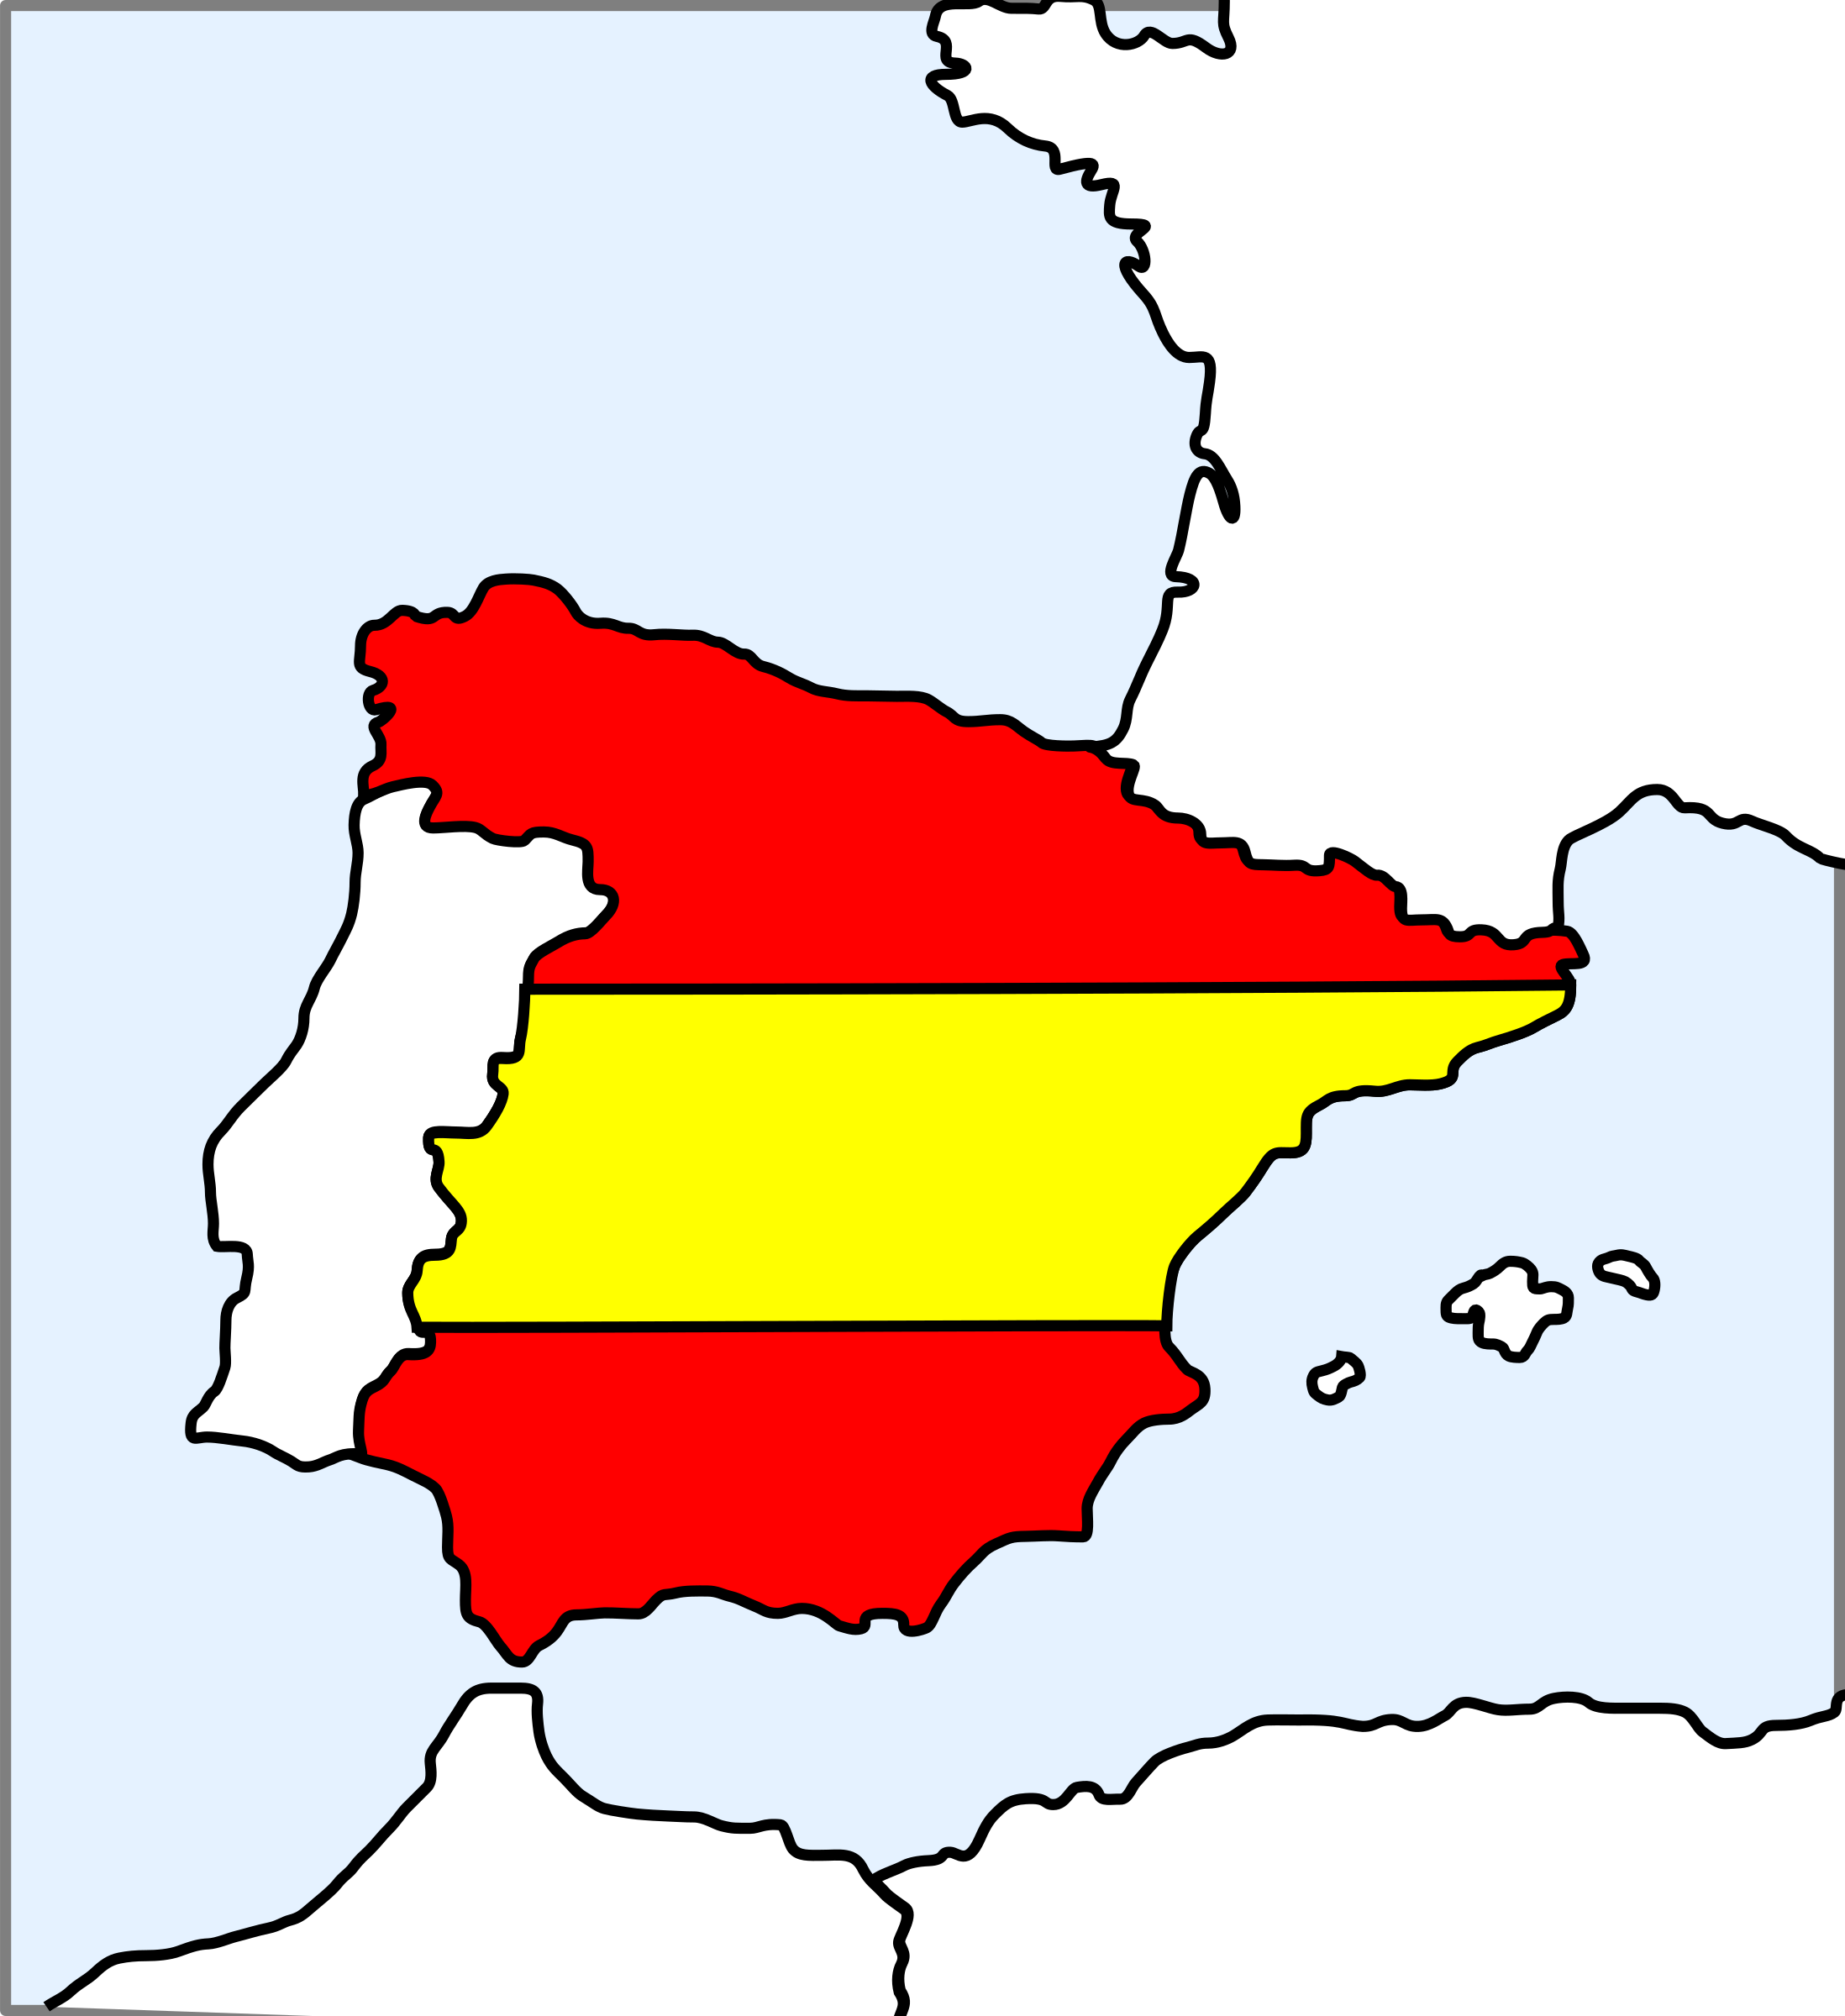 Spain (map and flag) by mireille